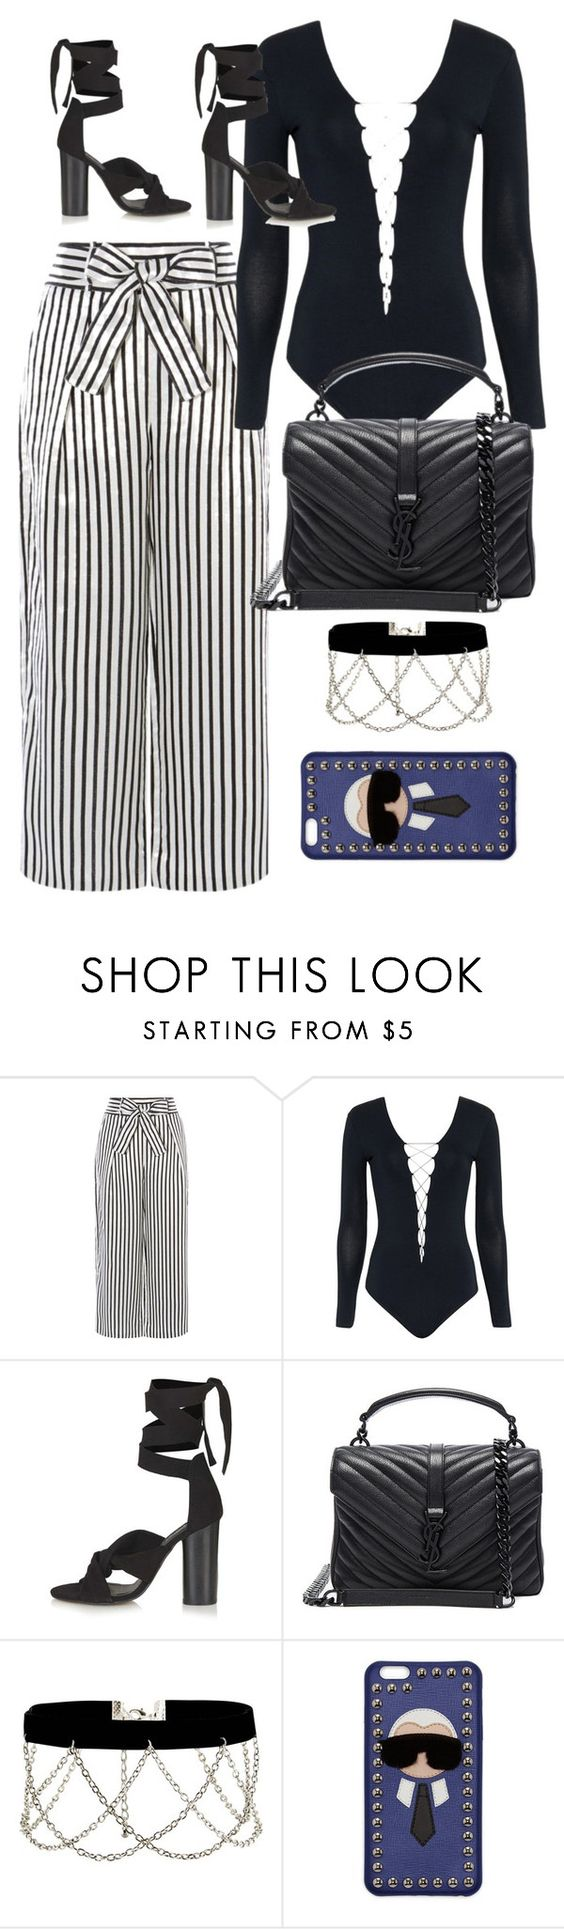 """Untitled #9852"" by katgorostiza ❤ liked on Polyvore featuring Karen Millen, Alexander Wang, Topshop, Yves Saint Laurent, New Look and Fendi"